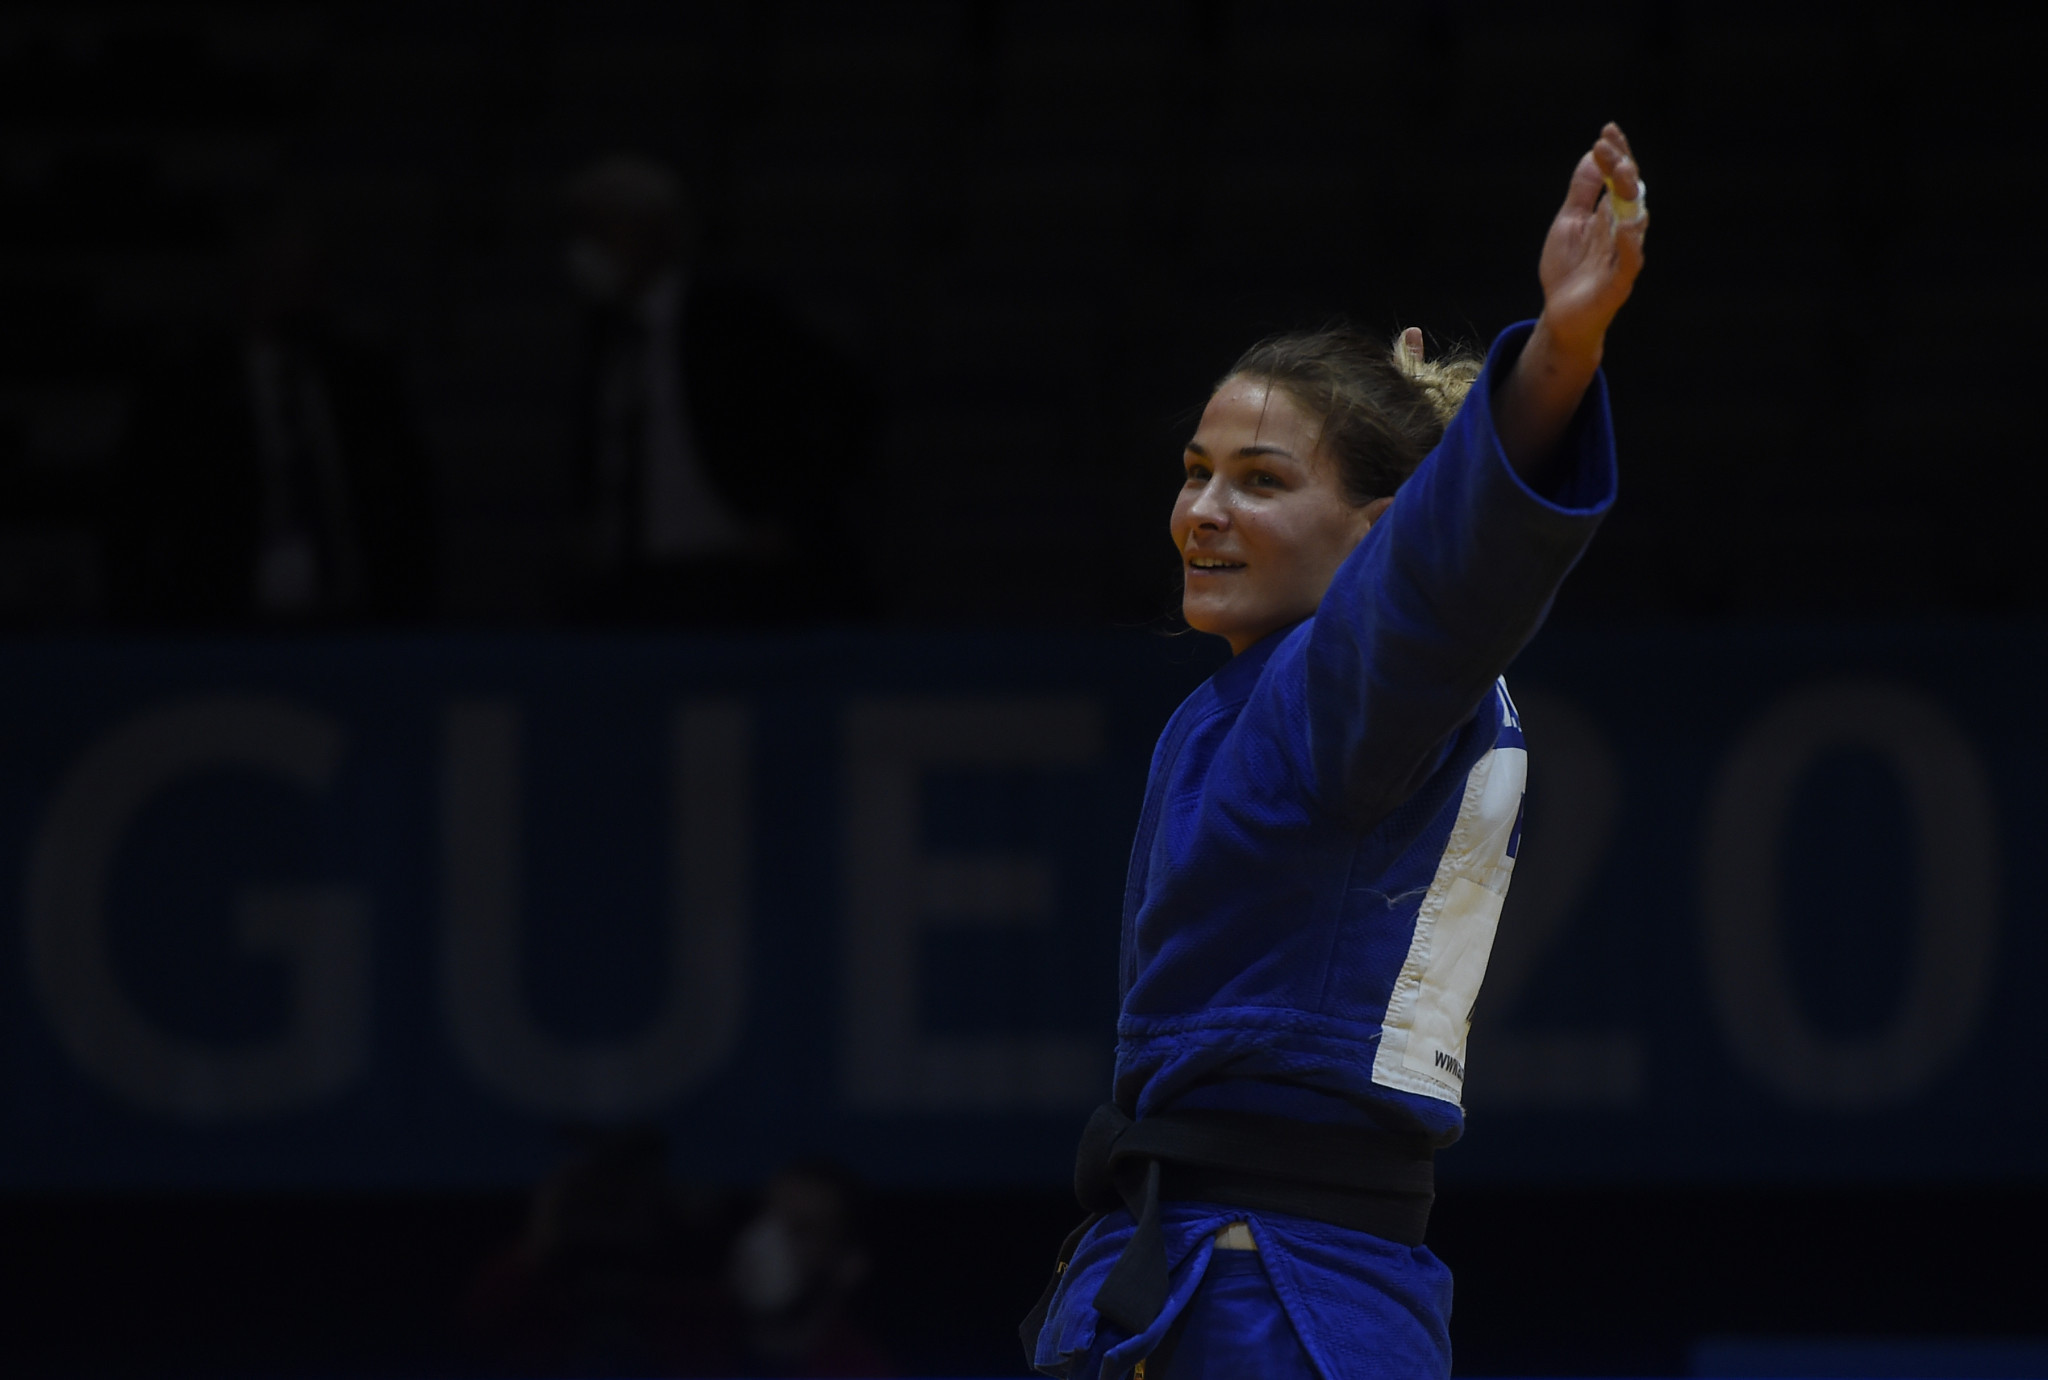 Hungarian Hedvig Karakas won a first European title today ©Getty Images